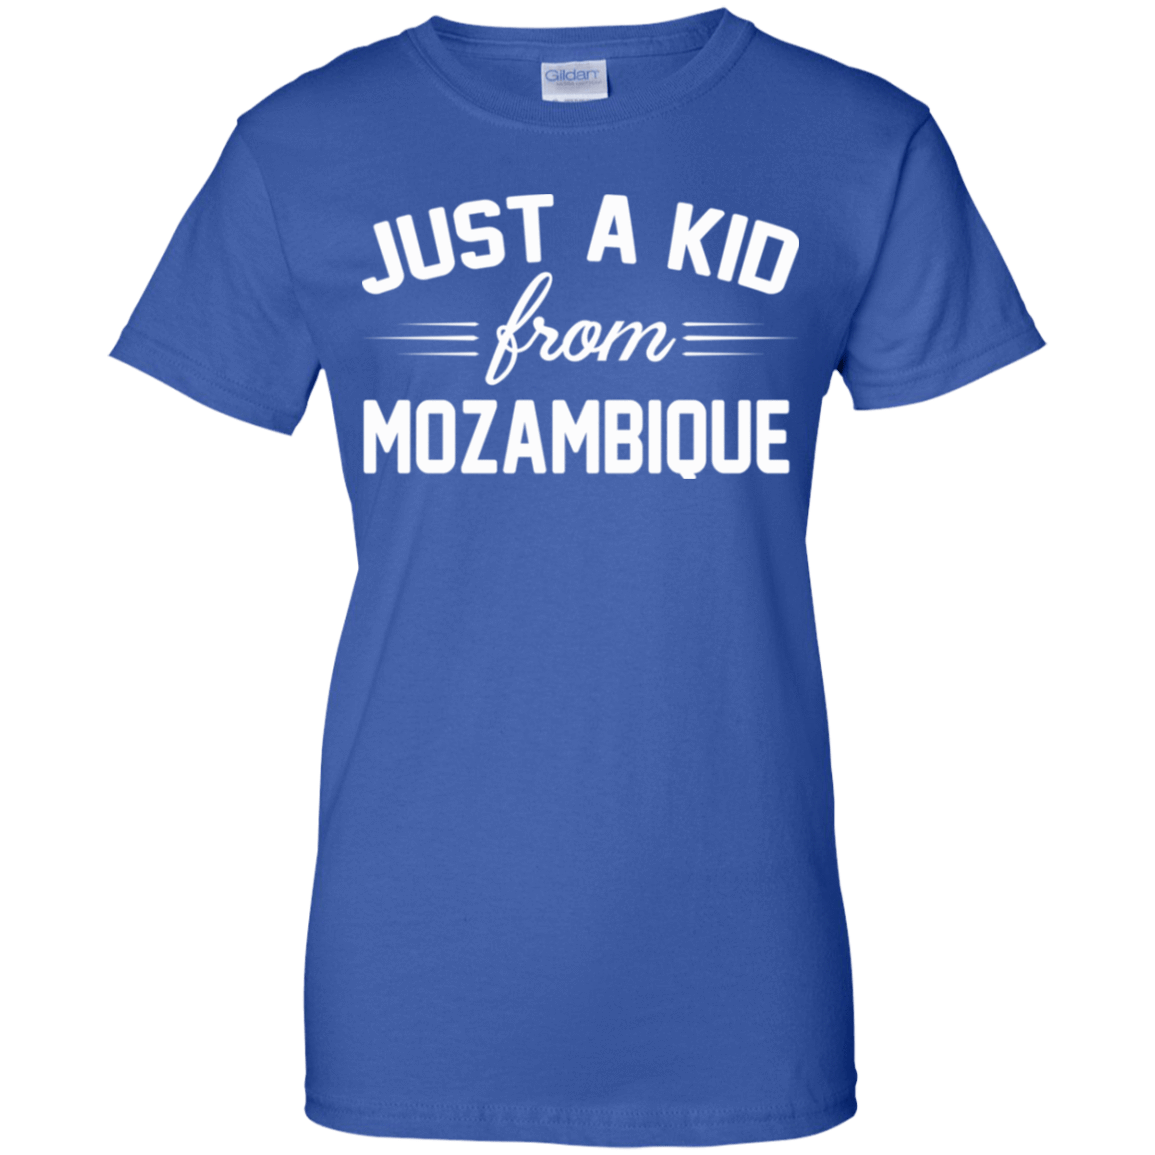 Just a Kid Store | Mozambique T-Shirts, Hoodie, Tank 939-9264-72091589-44807 - Tee Ript